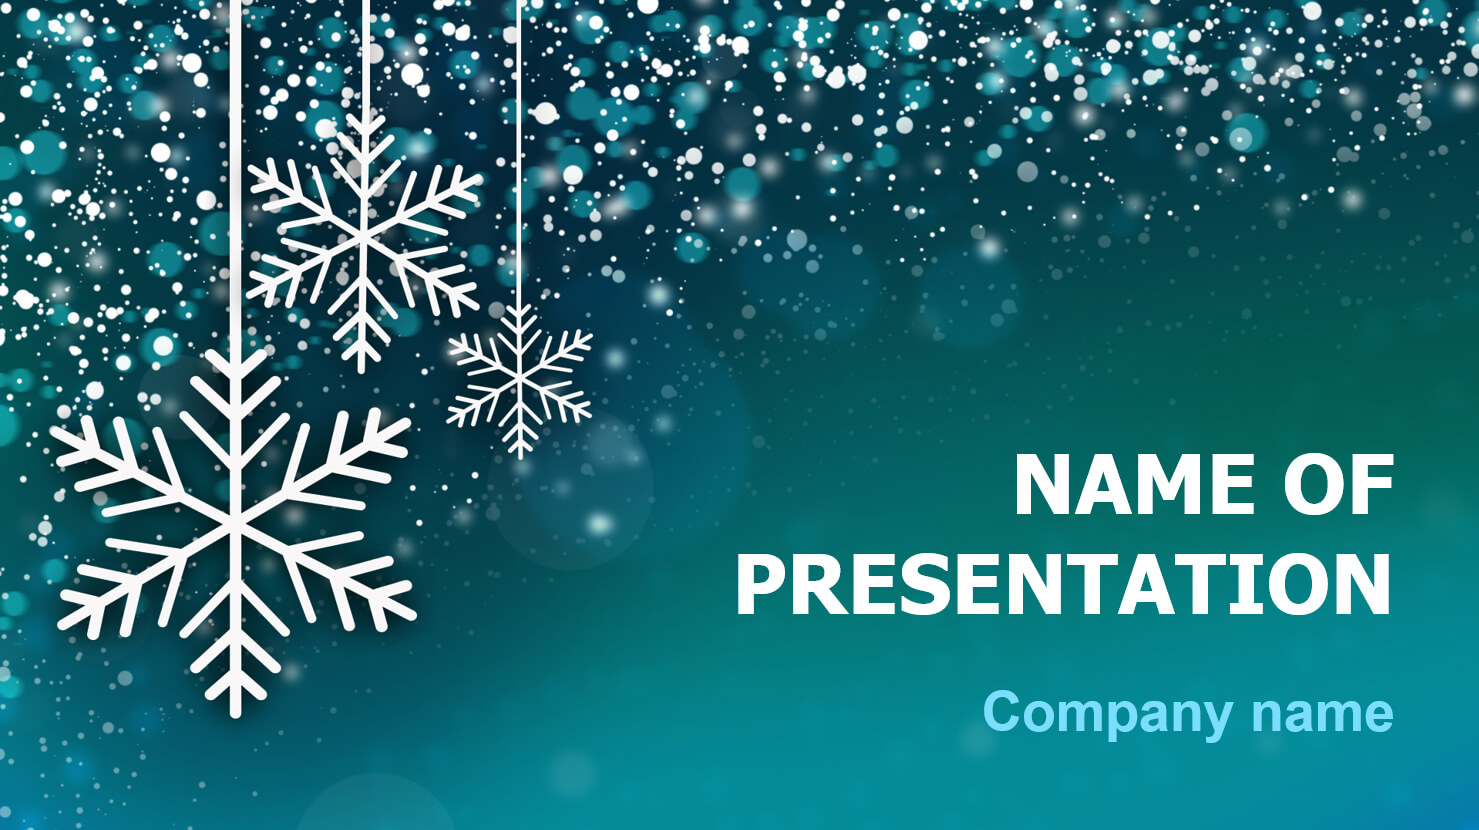 Download Free Snowing Snow Powerpoint Theme For Presentation Regarding Snow Powerpoint Template